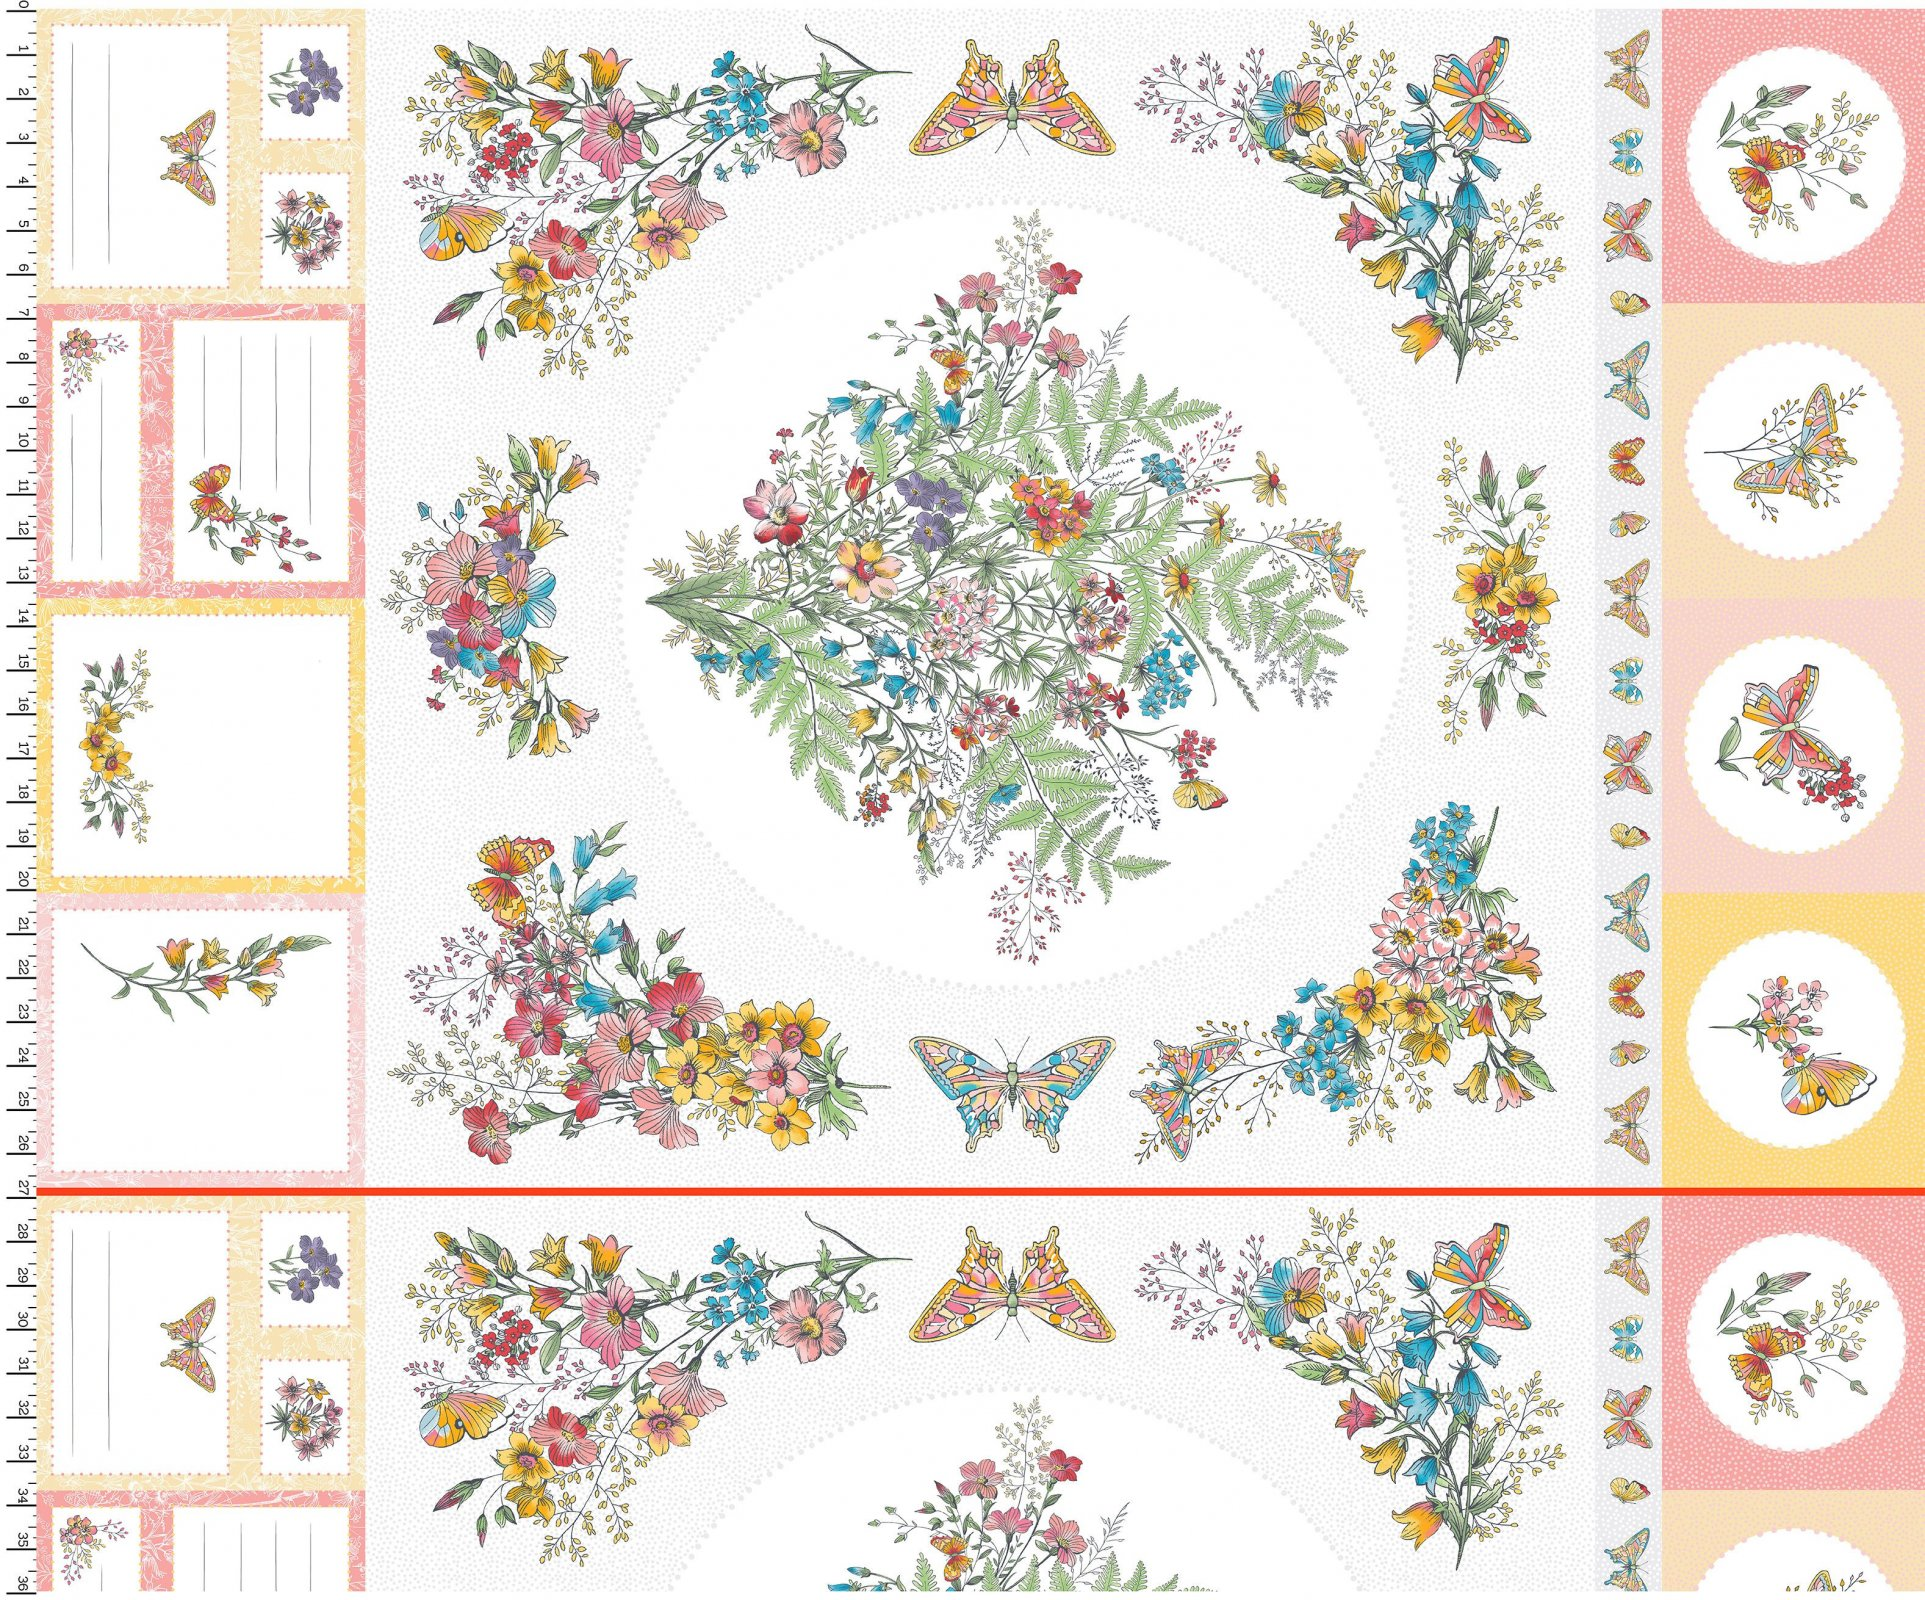 EESC-D10001 W - MEADOW EDGE BY MAYWOOD STUDIO MEADOW EDGE PANEL (27)WHITE - ARRIVING IN MAY 2021